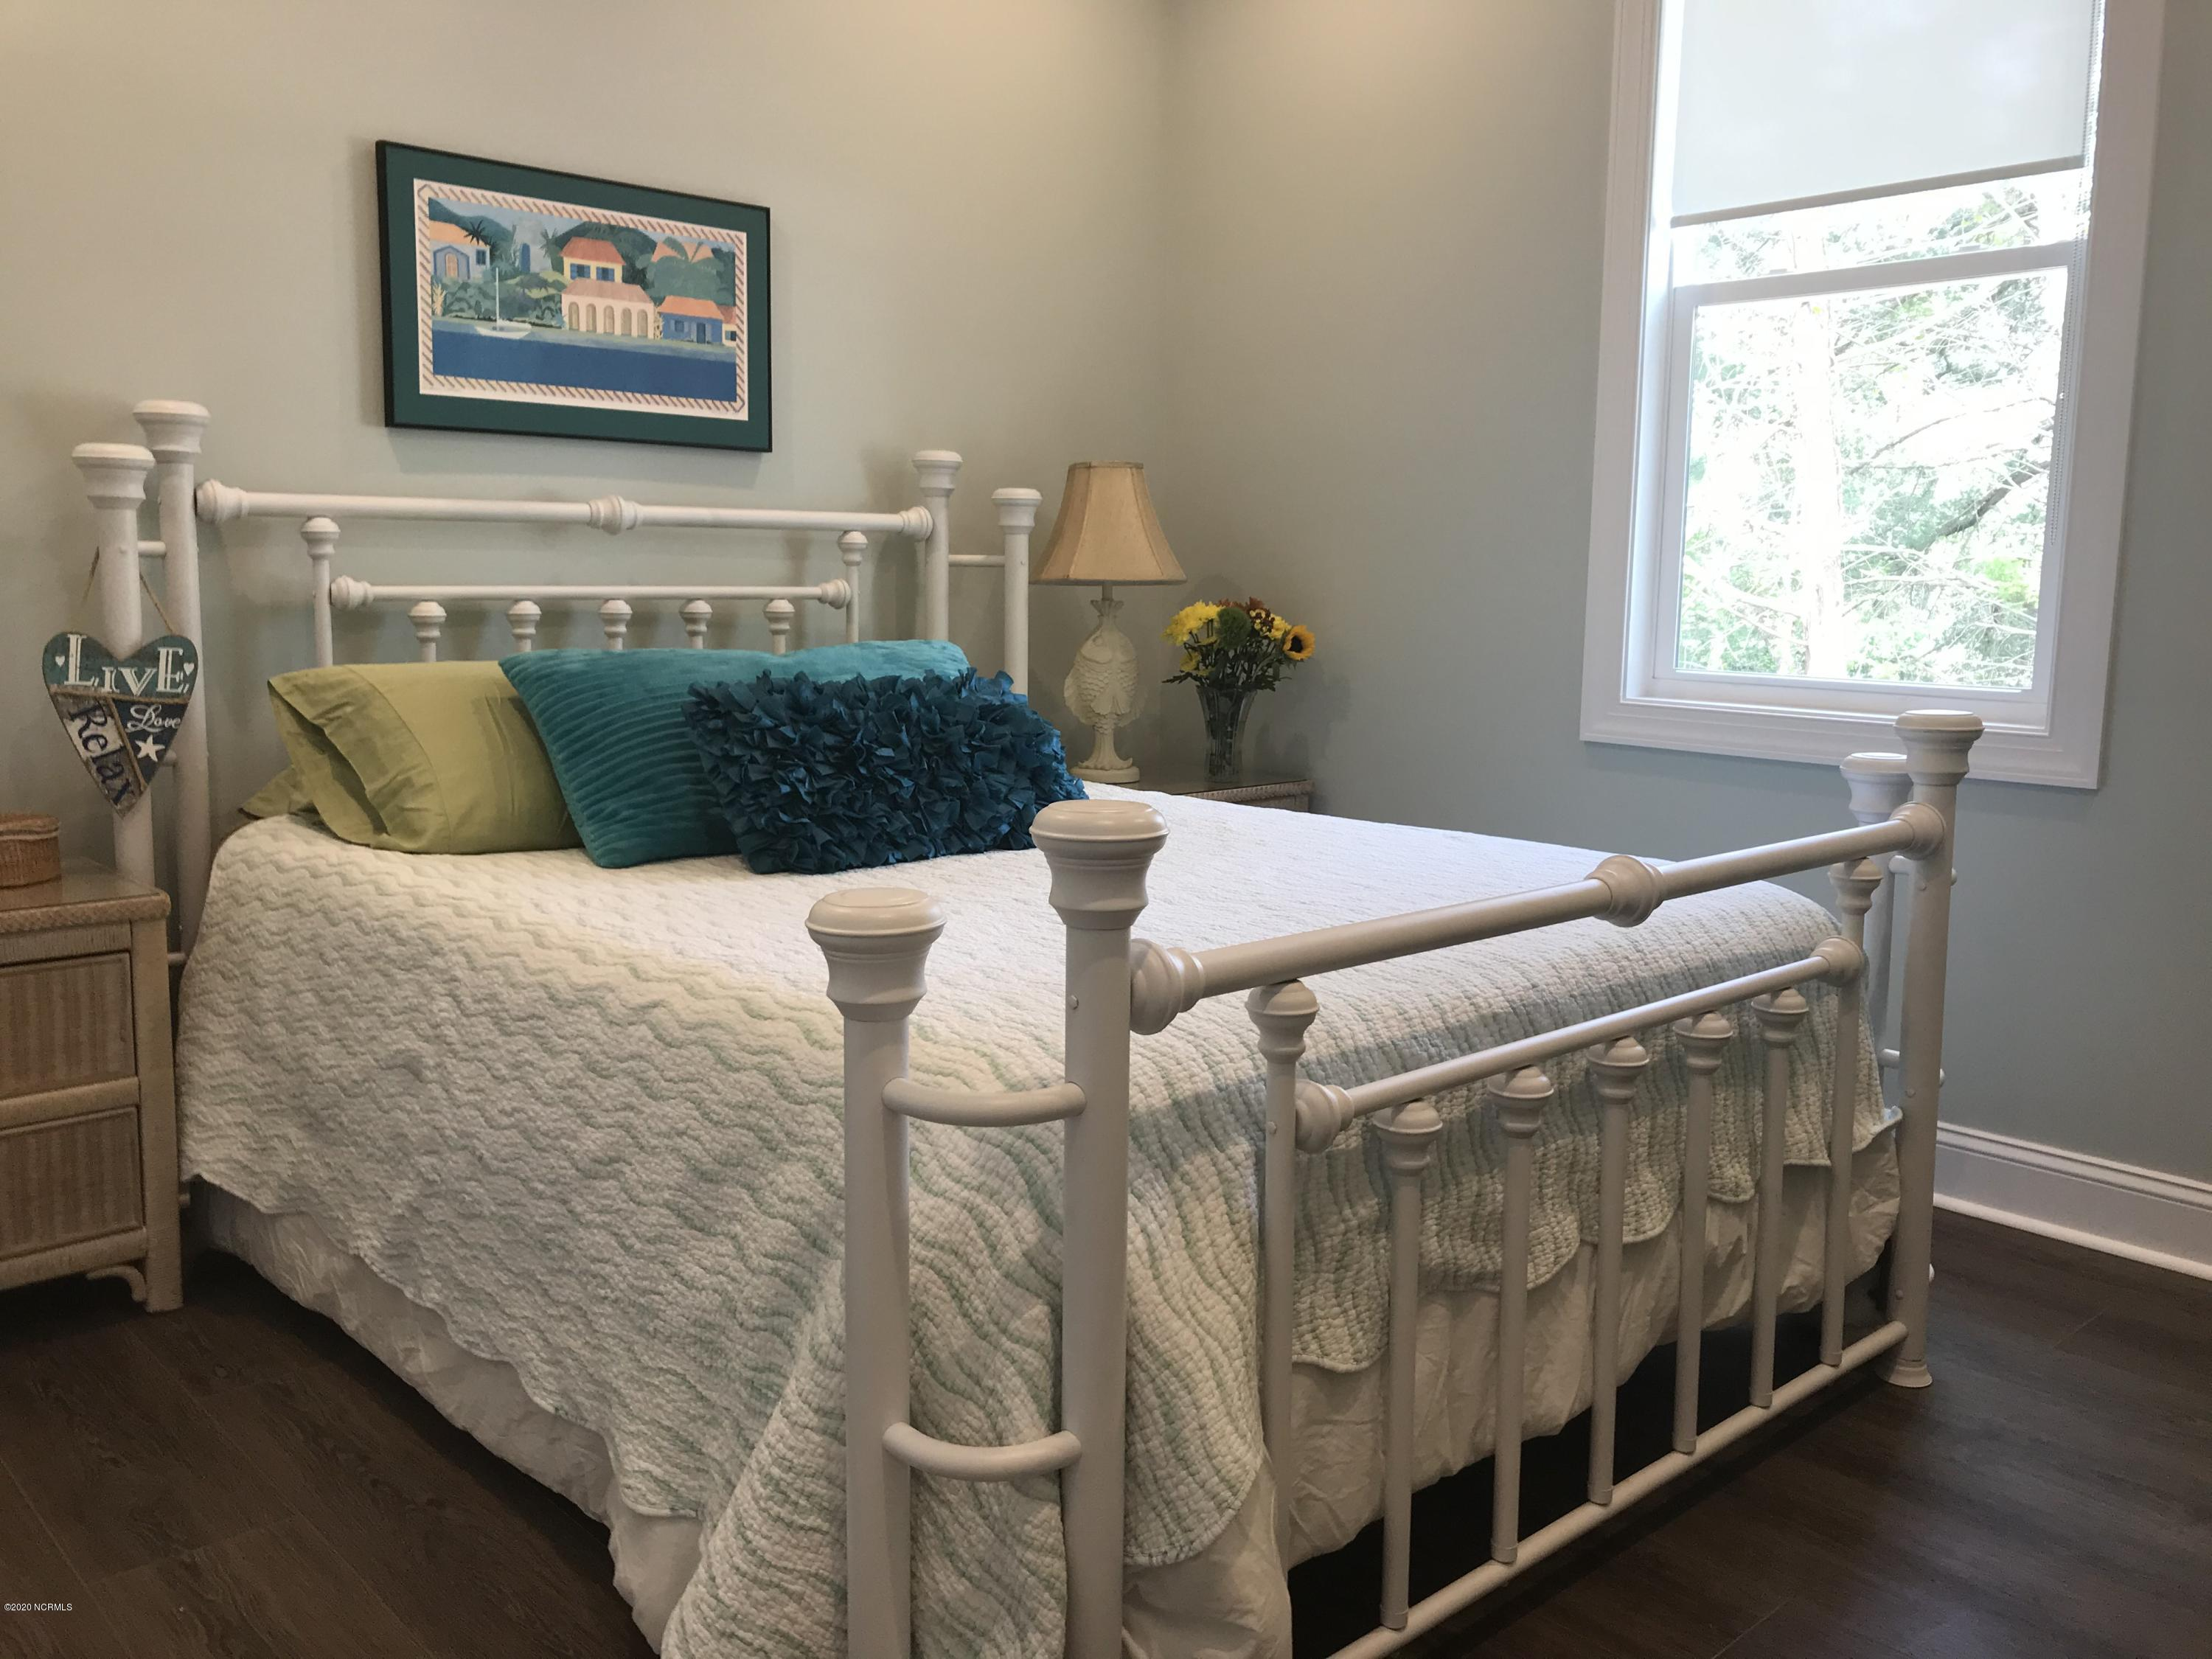 106 Evergreen Lane, Pine Knoll Shores, North Carolina 28512, 3 Bedrooms Bedrooms, 5 Rooms Rooms,2 BathroomsBathrooms,Single family residence,For sale,Evergreen,100190225